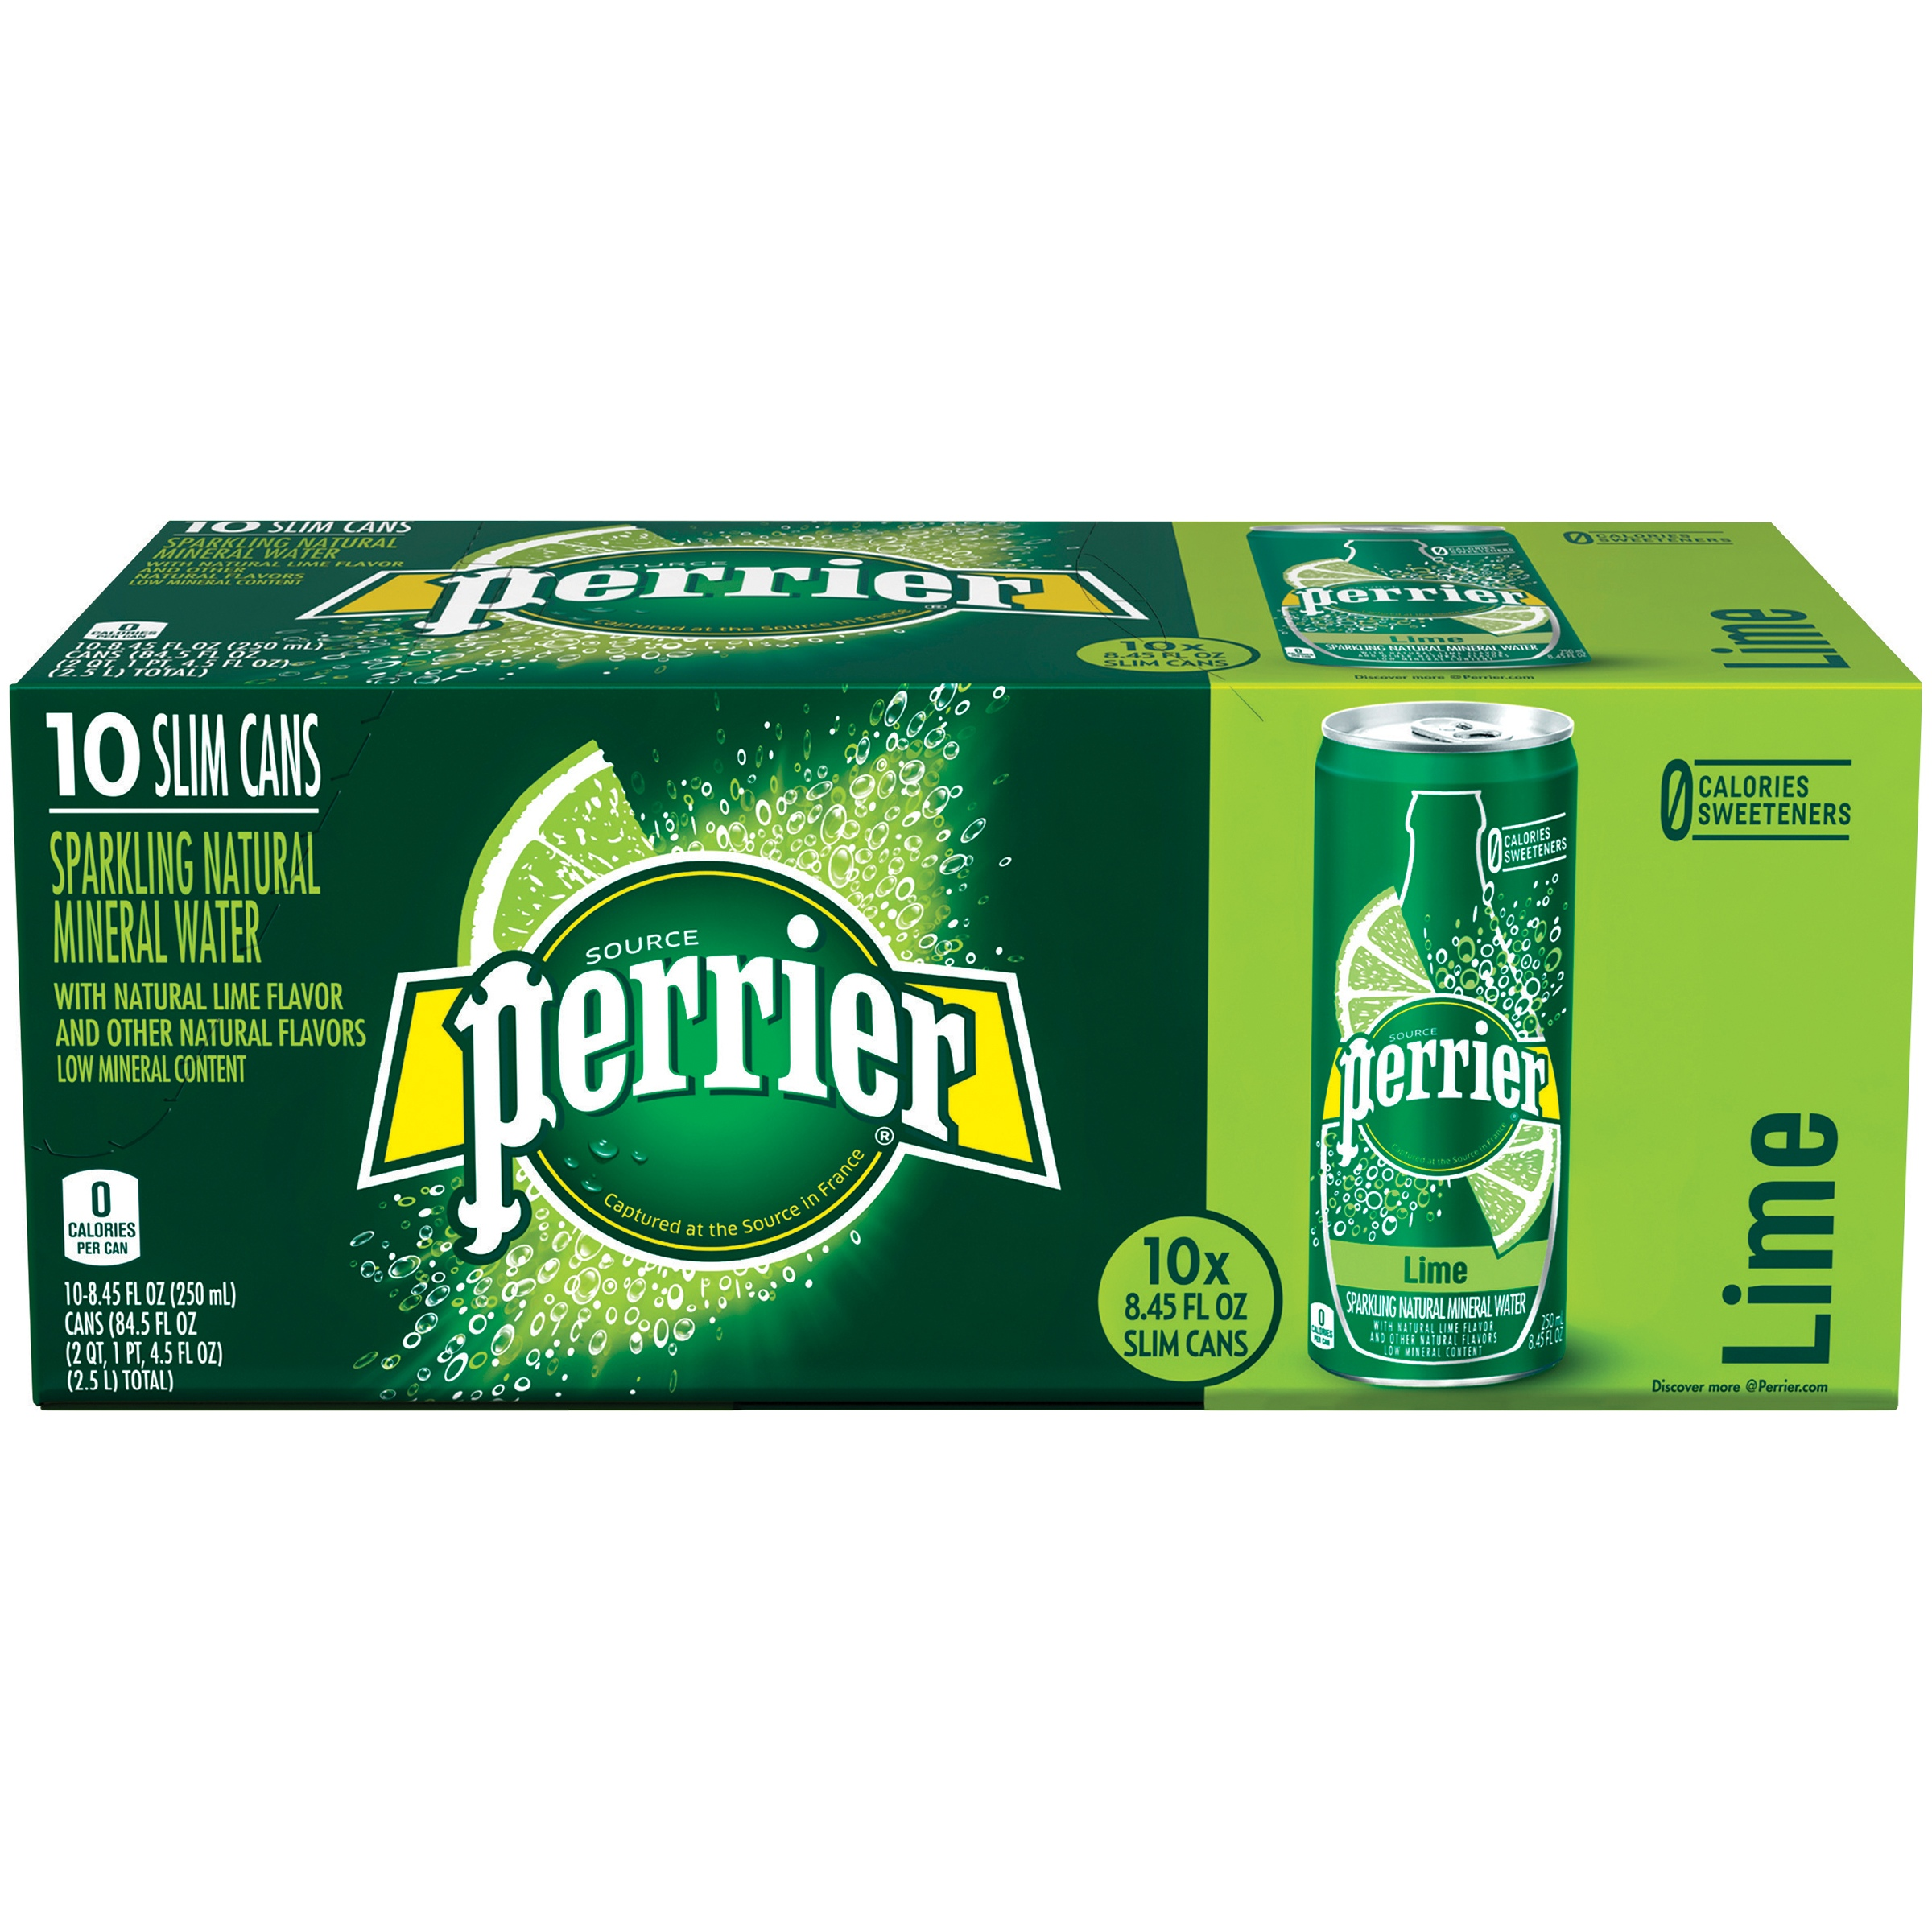 Perrier Lime Sparkling Natural Mineral Water, 8.45 Fl. Oz., 10 Count